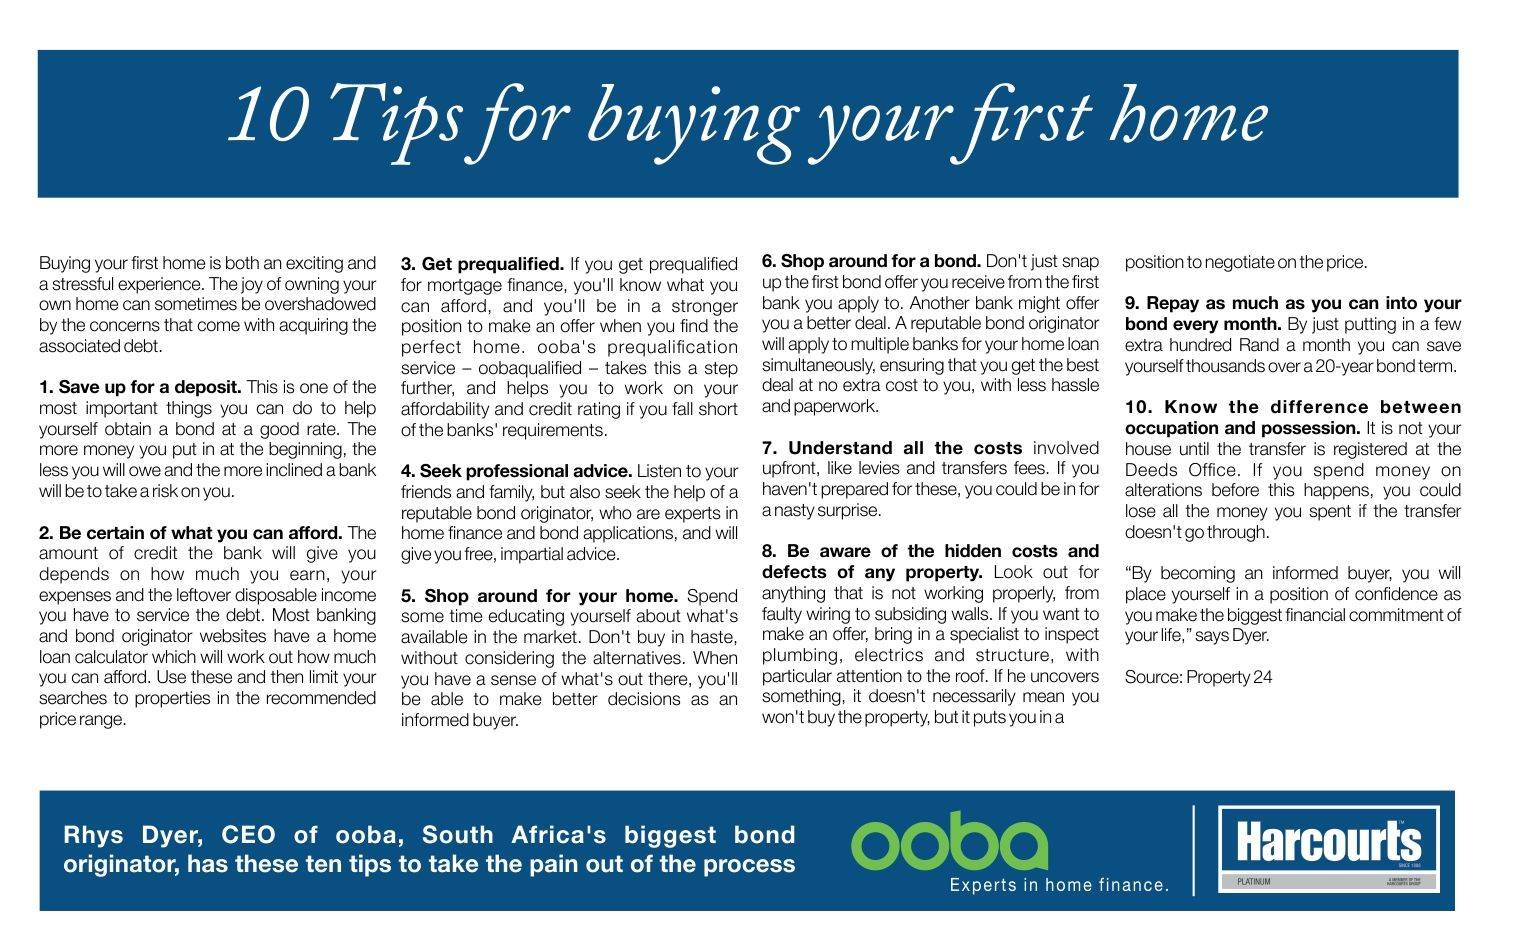 10 Tips for buying your first home. #TopTipTuesday #HarcourtsPlatinum